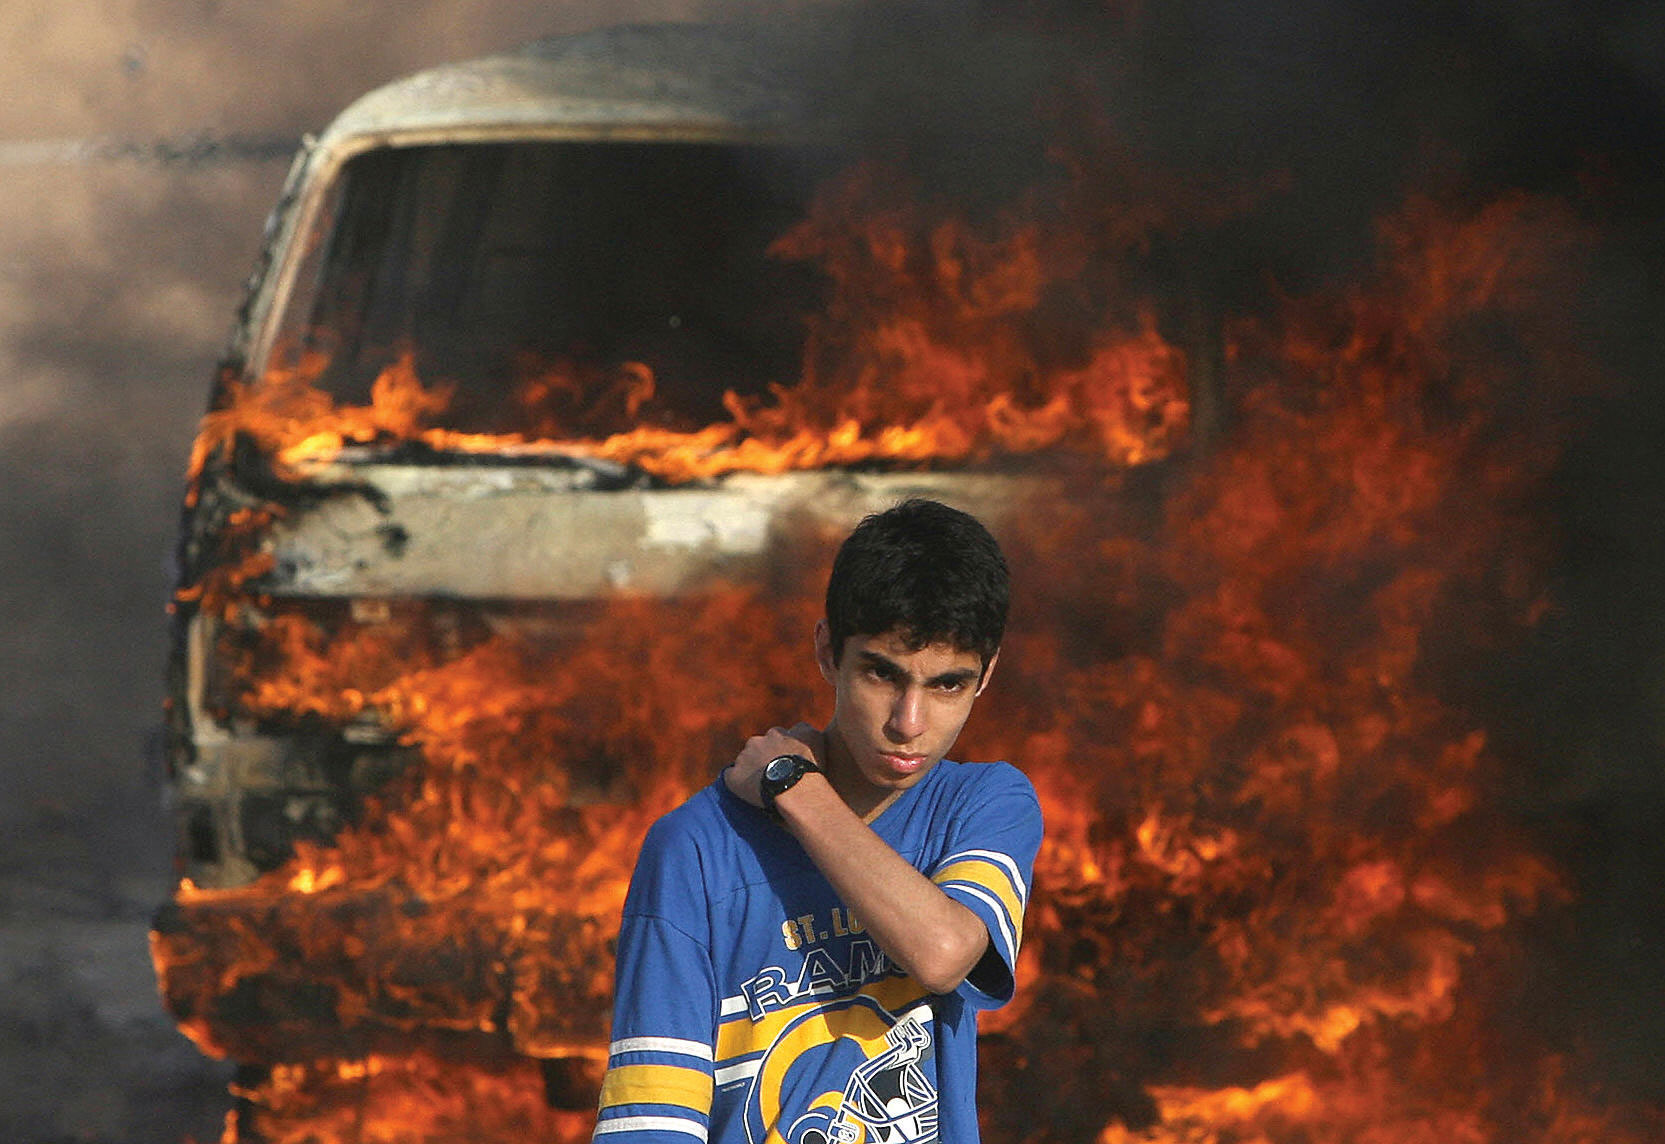 A Palestinian youth stands in front of a burning vehicle during clashes between rival Fatah and Hamas gunmen in Gaza City, May 14, 2007.